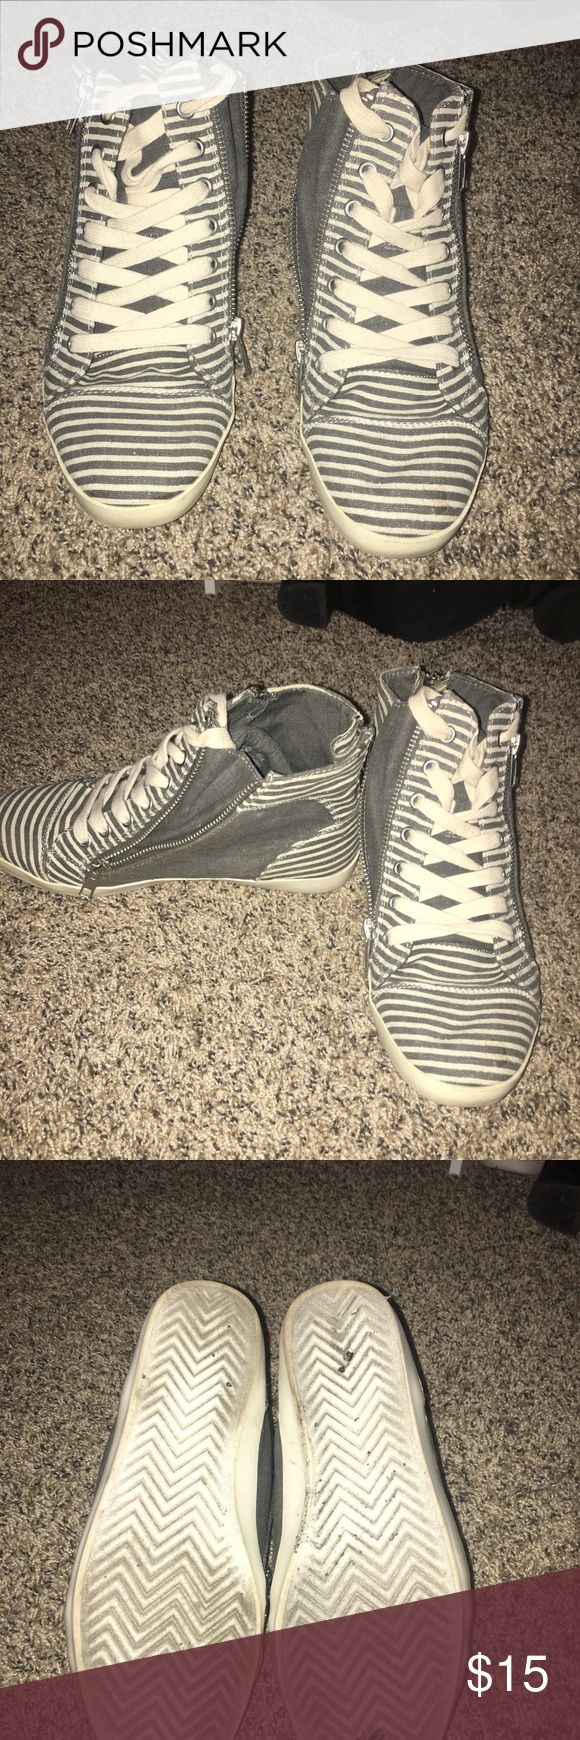 Striped sneakers Lightly worn, comfortable zipper sneakers! Forever 21 Shoes Sneakers